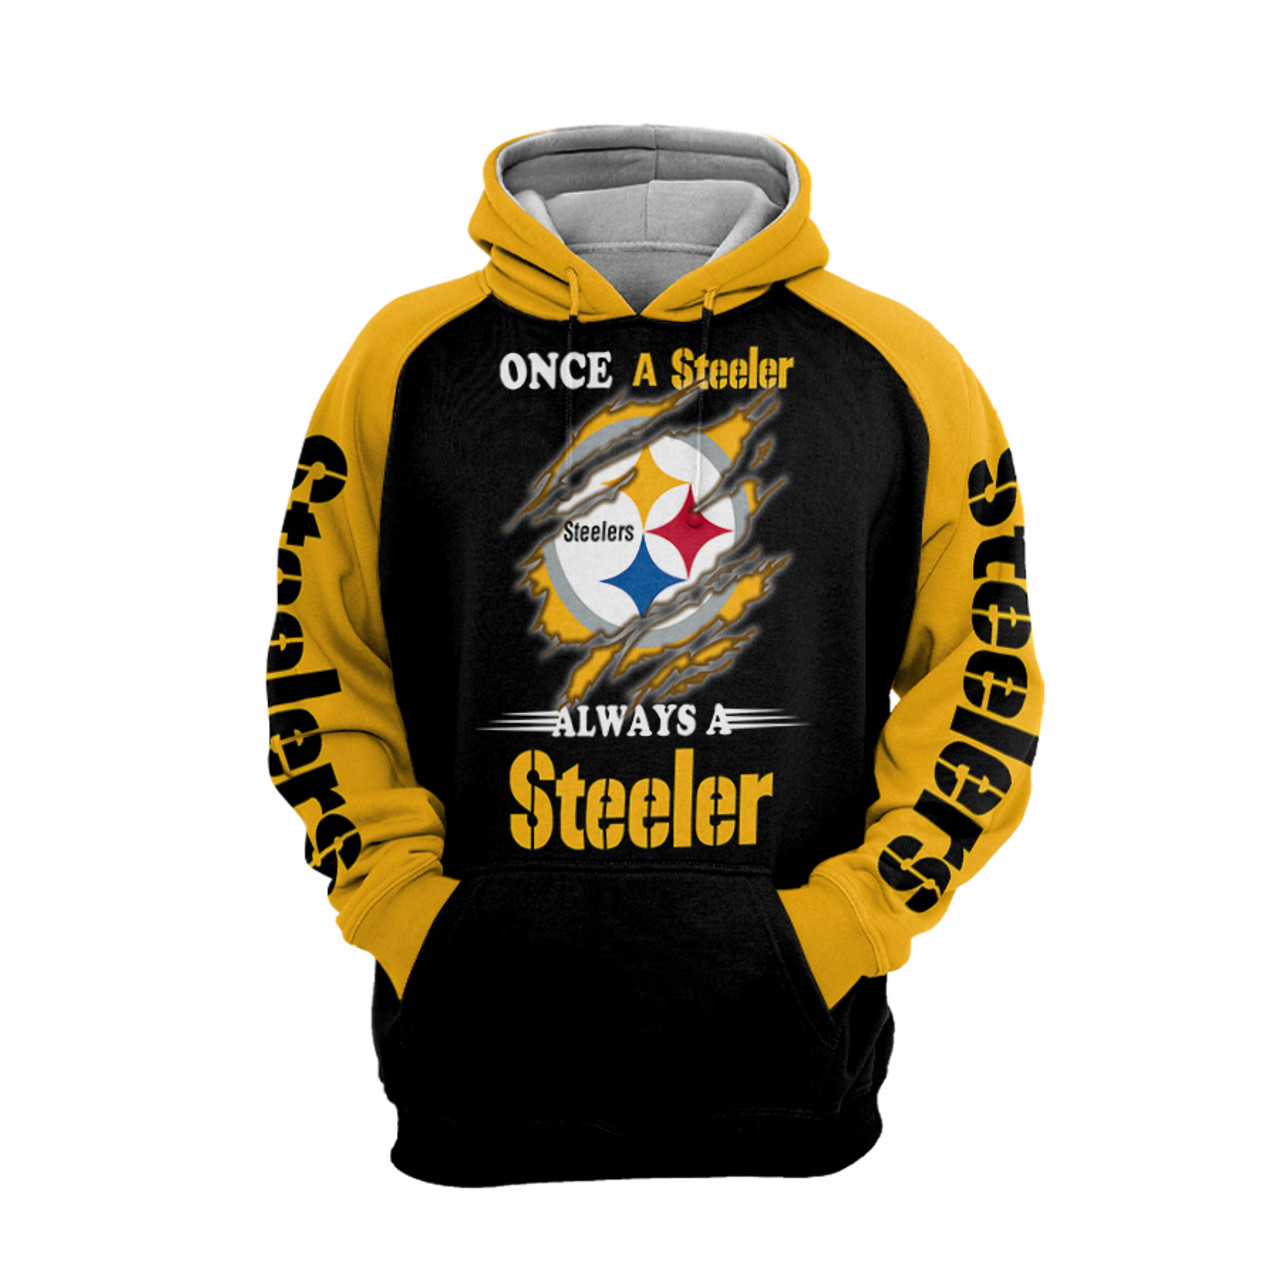 **(OFFICIAL-N.F.L.PITTSBURGH-STEELERS-PULLOVER-HOODIES/ONCE-A-STEELER-ALWAYS-A-STEELER-FAN-LOGOS/CLASSIC-OFFICIAL-STEELERS-COLORS & OFFICIAL-CUSTOM-STEELERS-LOGOS/CUSTOM-DETAILED-3D-GRAPHIC-PRINTED/WARM-PREMIUM-STEELERS-TEAM-PULLOVER-HOODIES)**